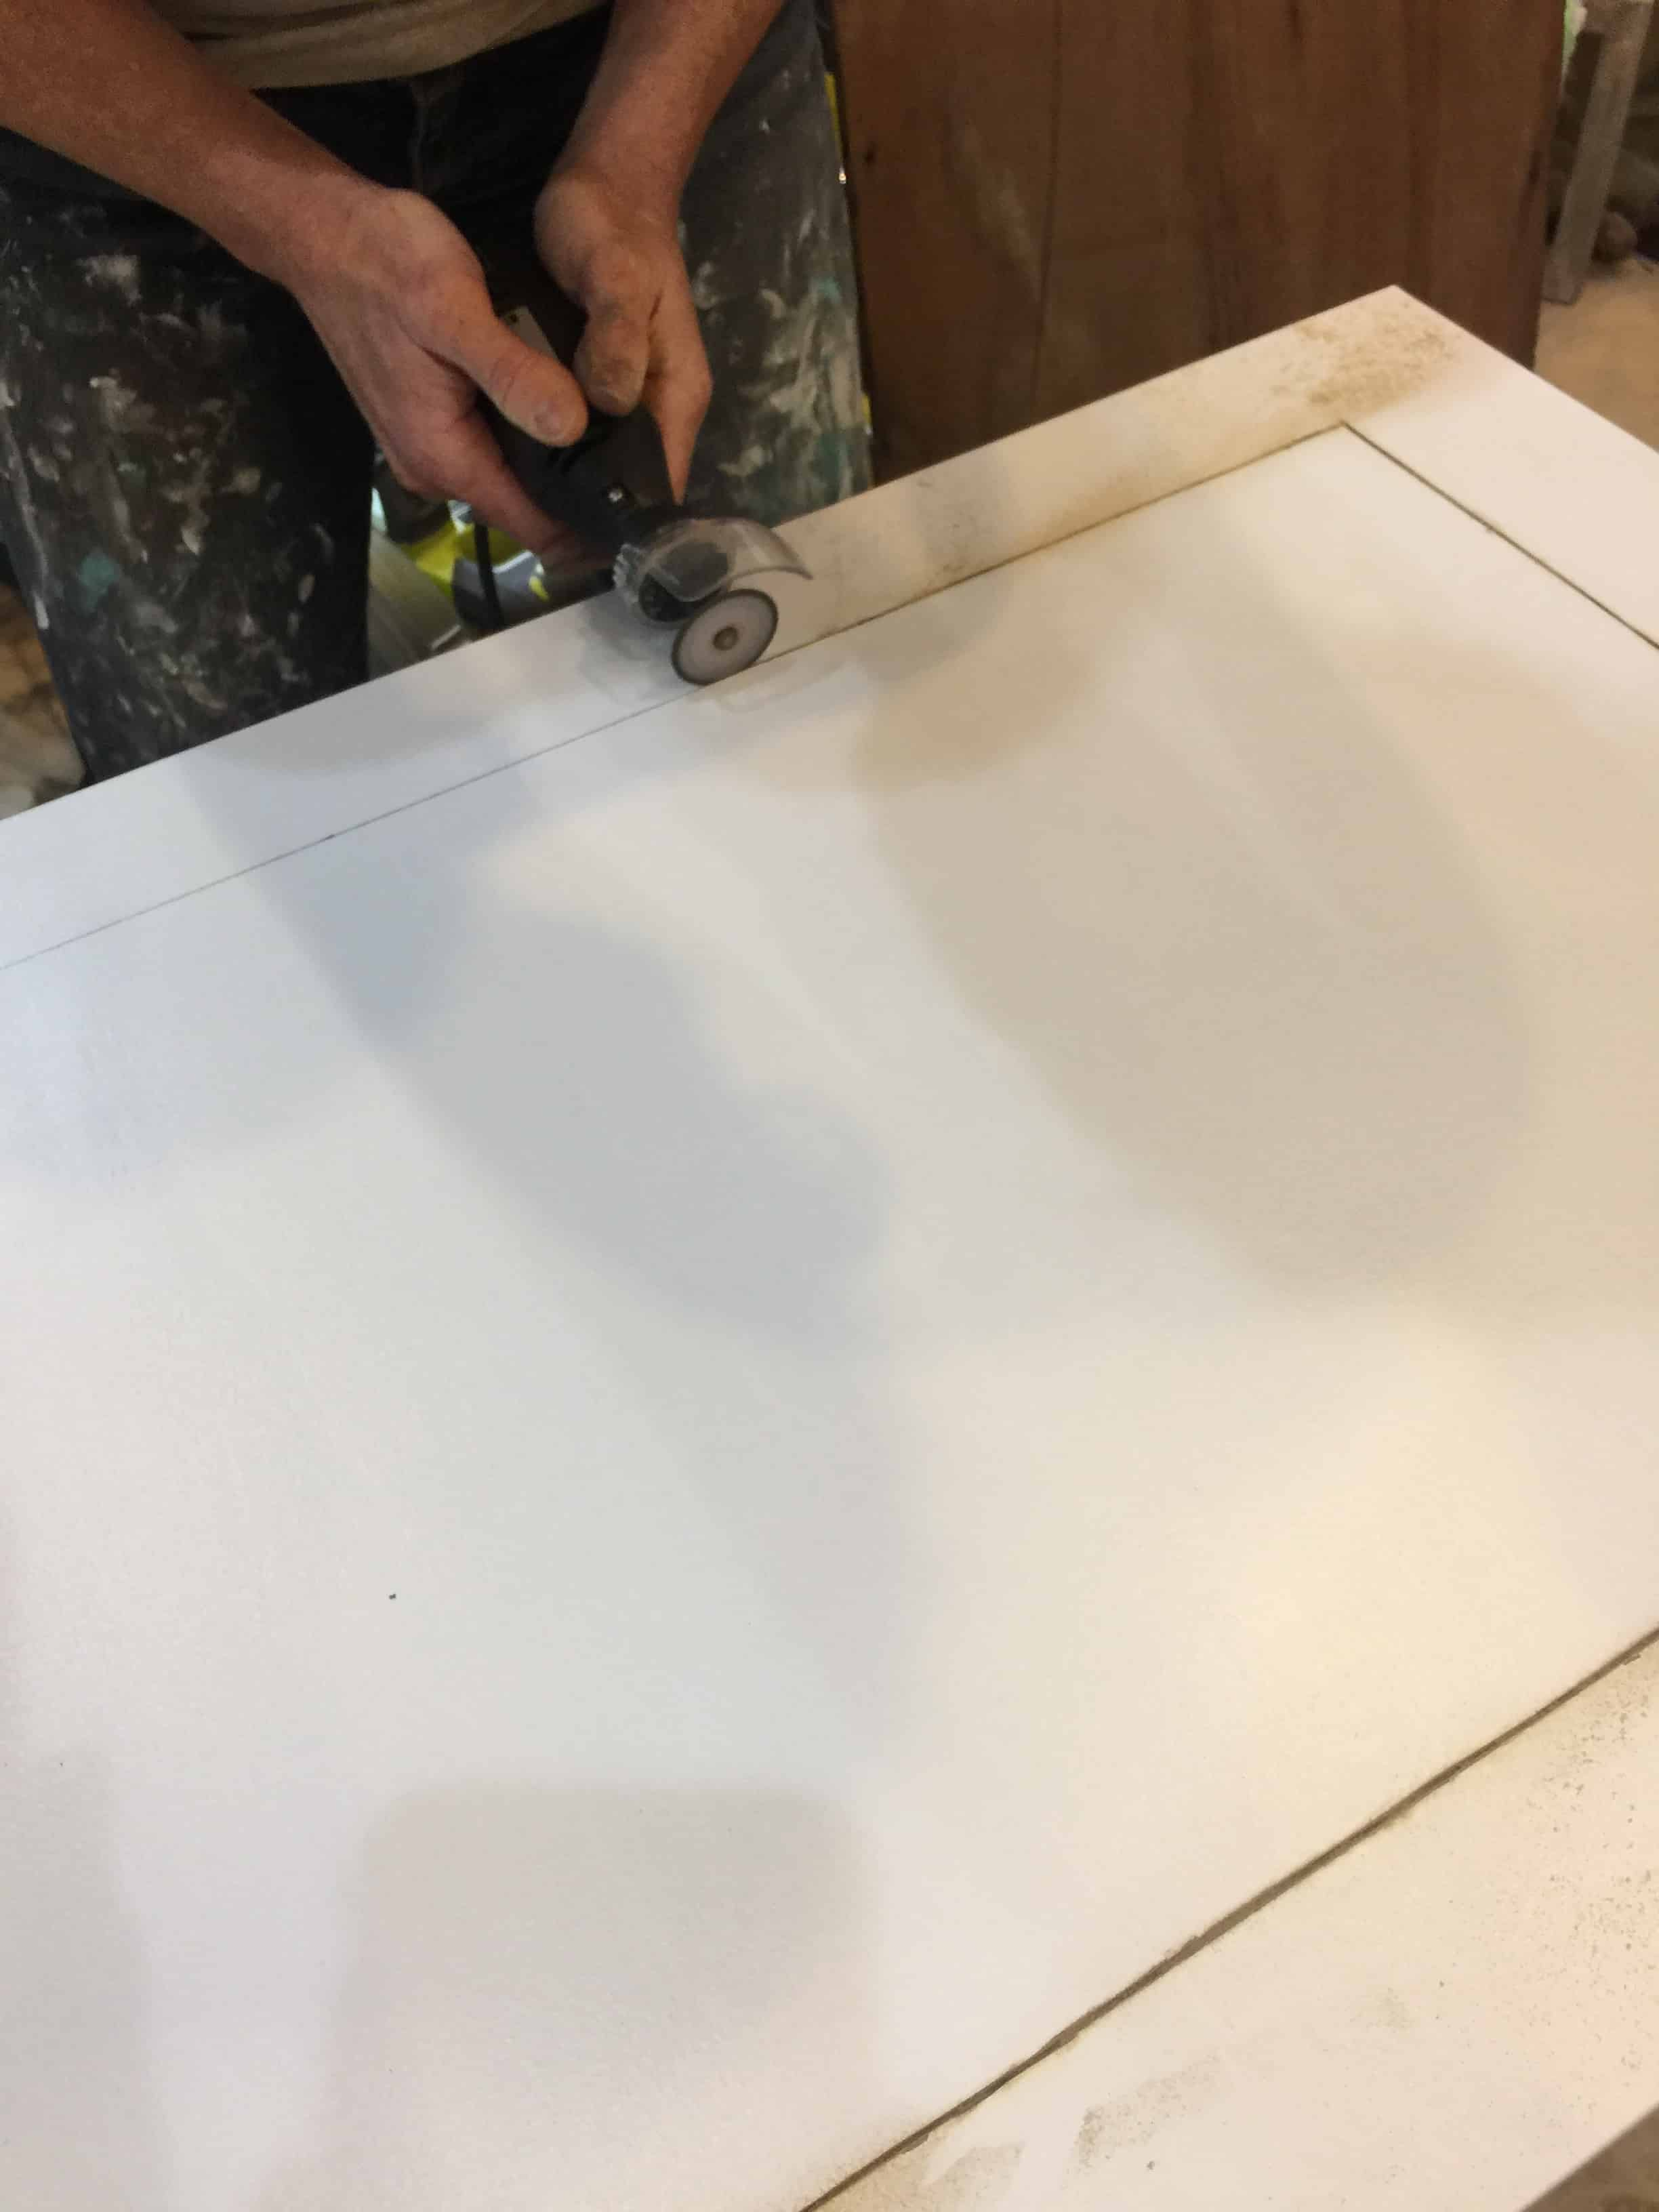 Saved by Scottie rv remodel door build cutting window with Dremel close up